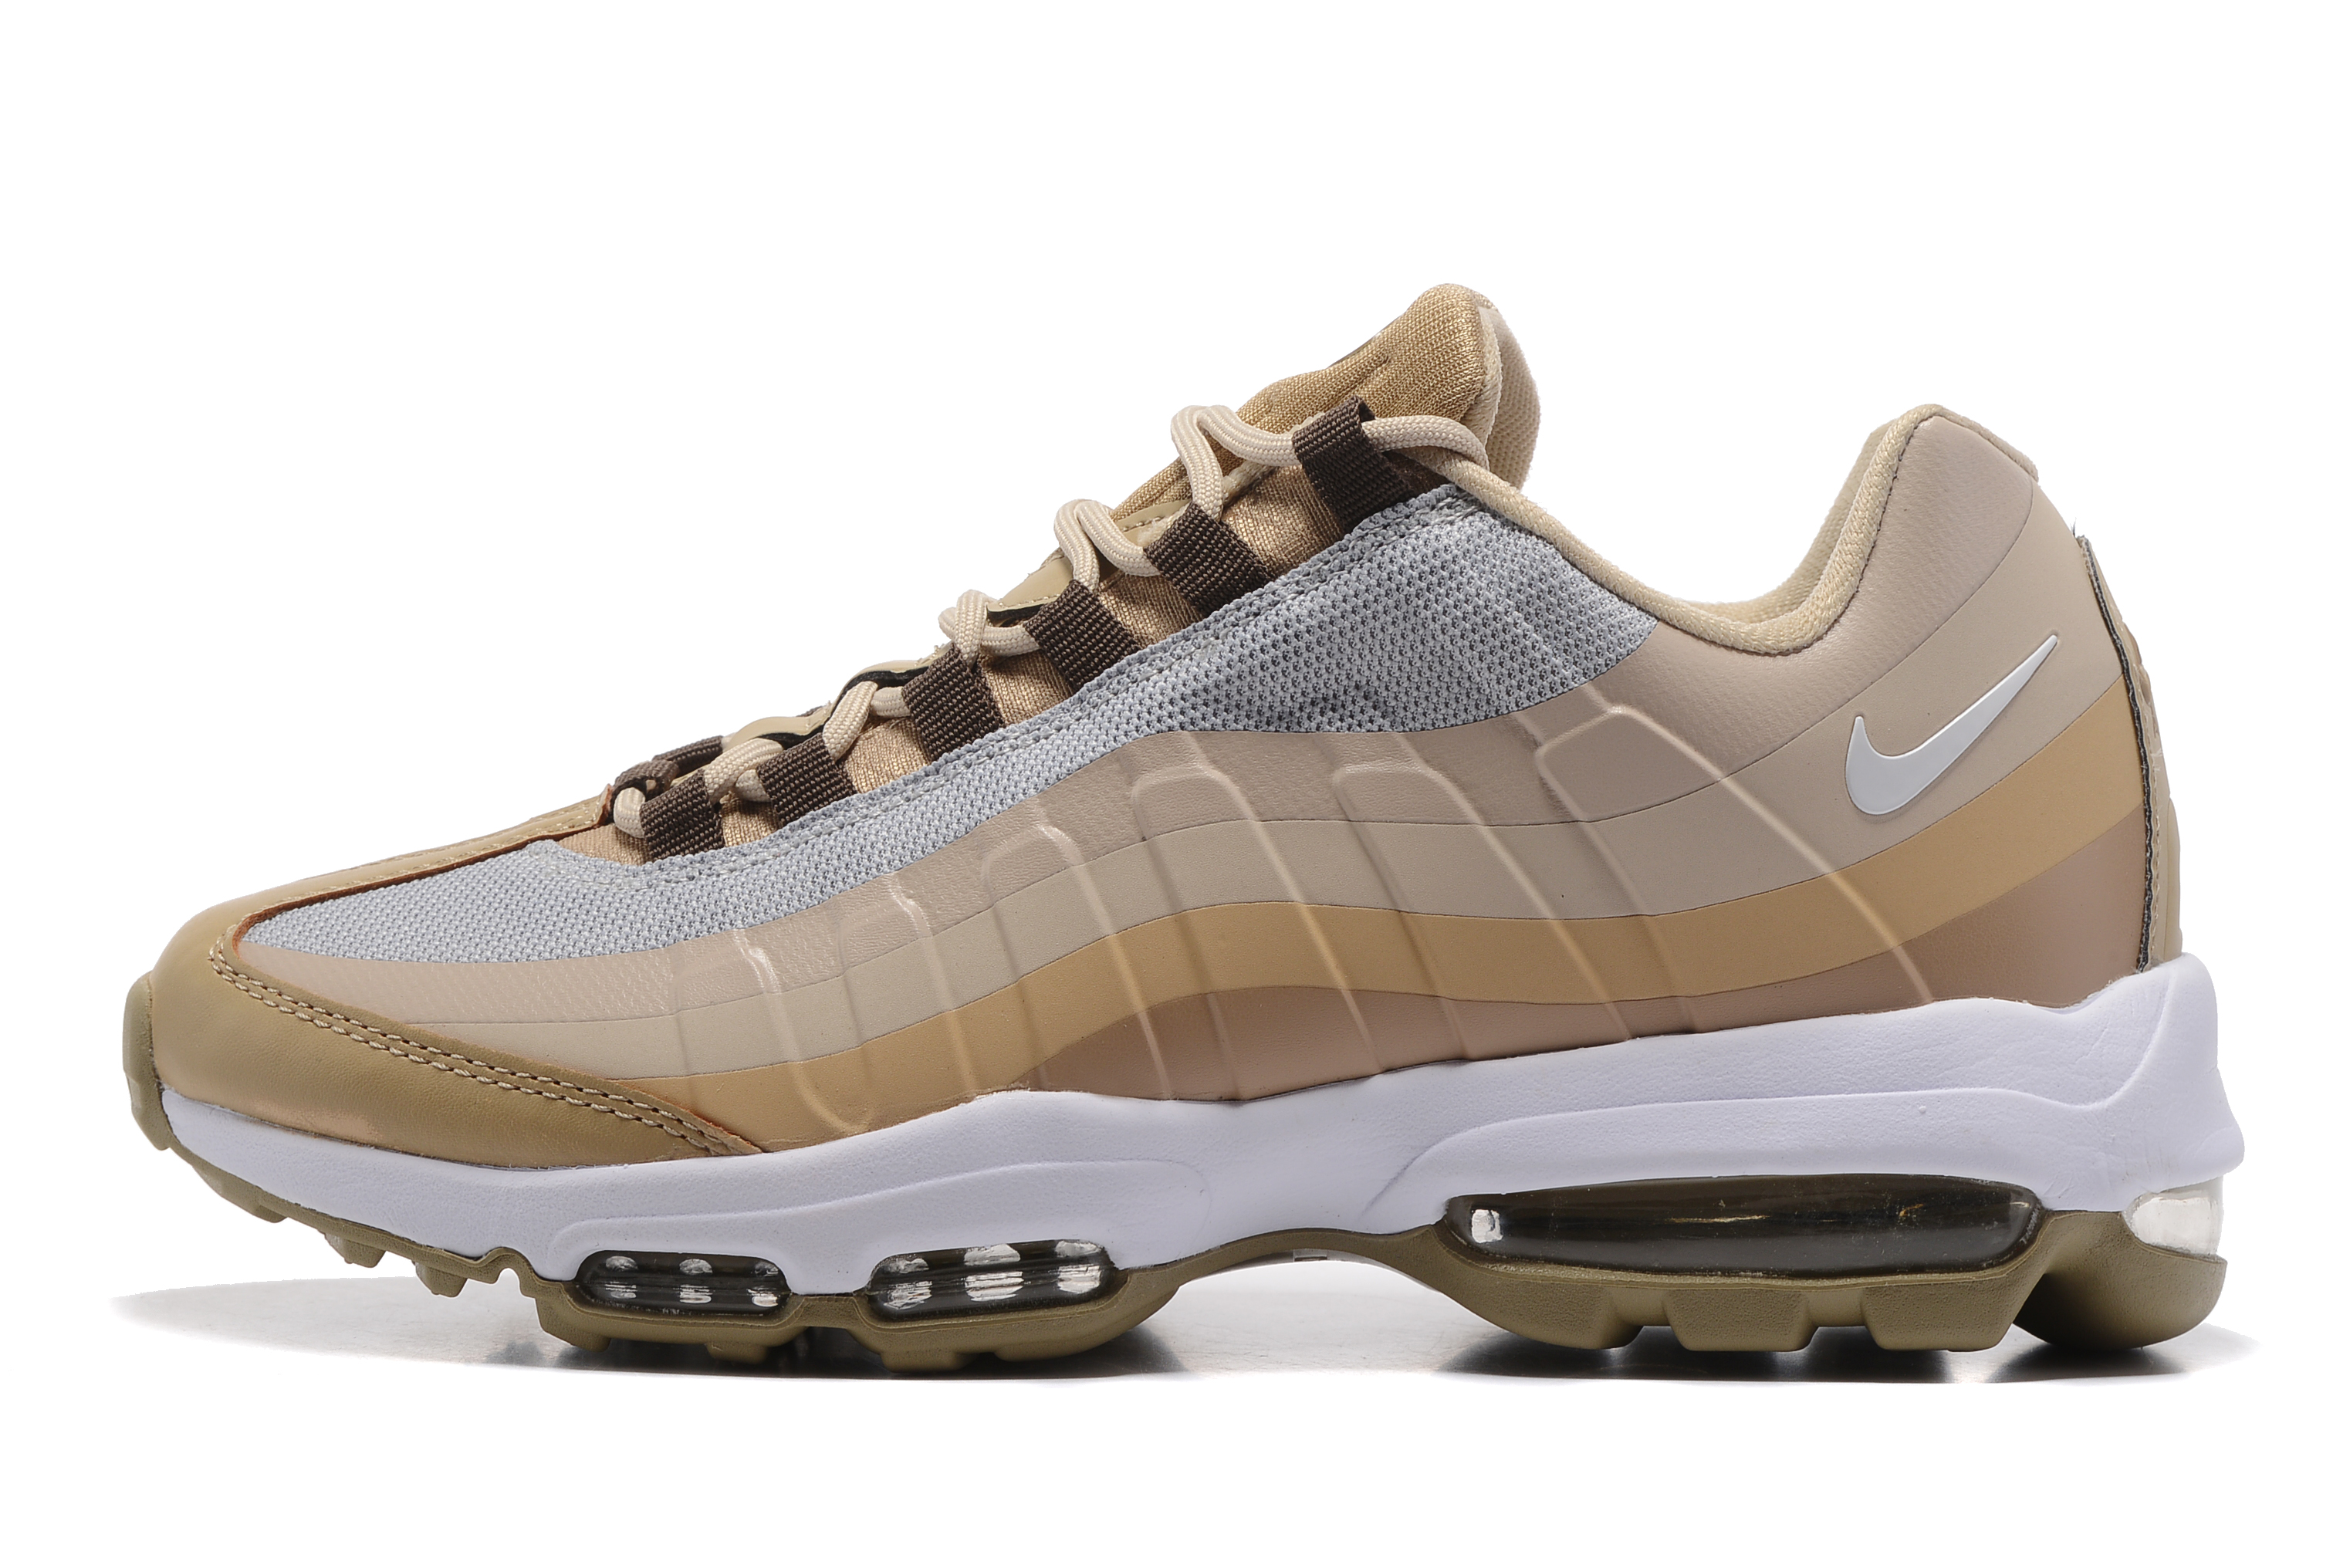 2017 Nike Air Max 95 Yellow Brown